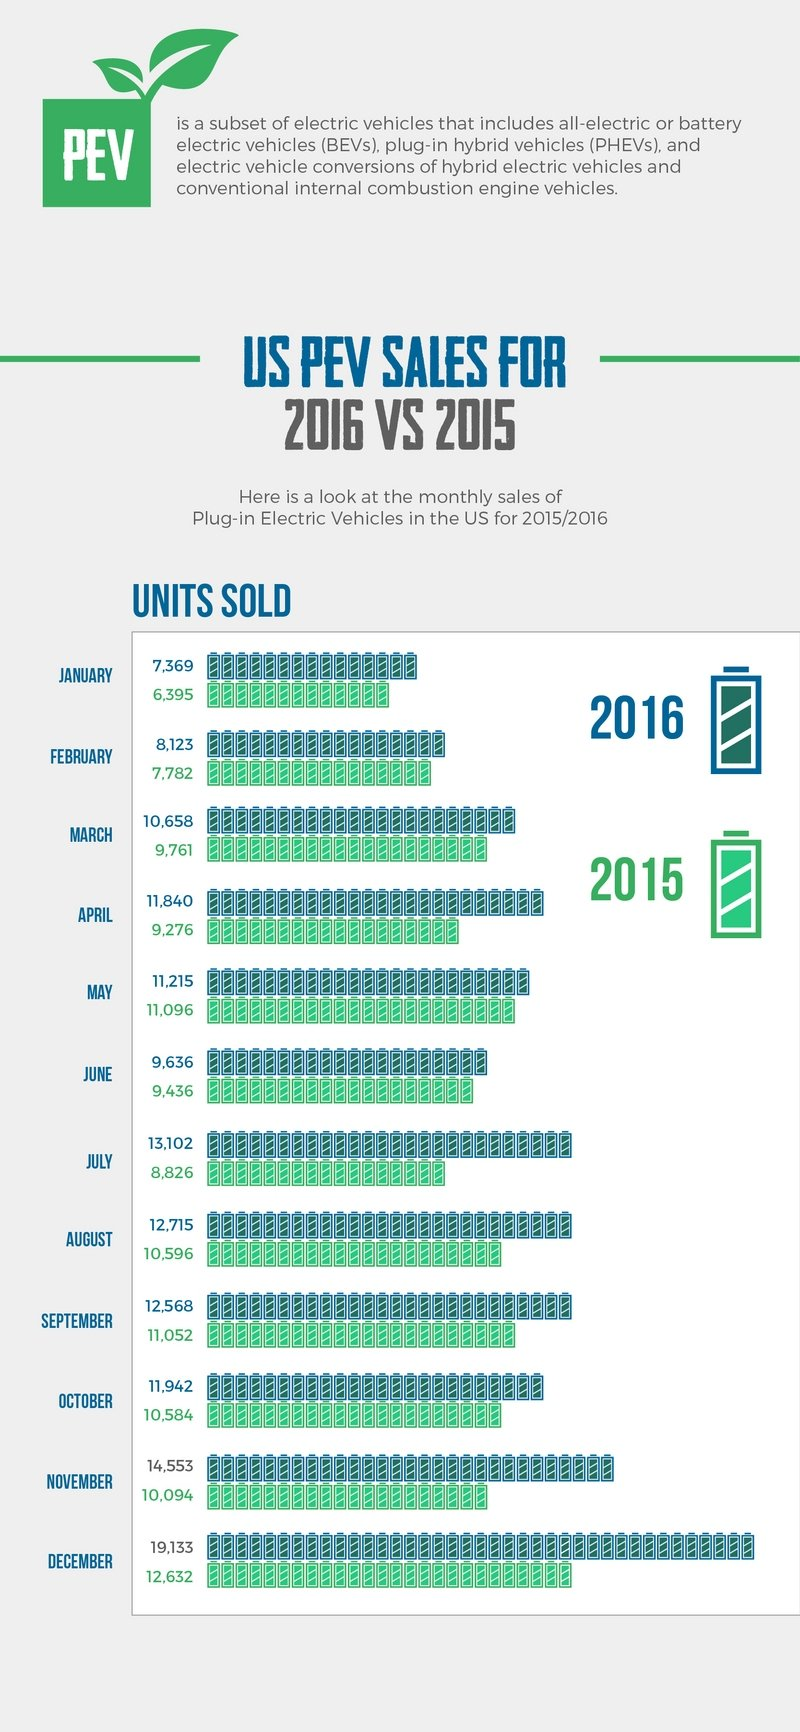 2016 Electric Vehicle Sales in the U.S. [INFOGRAPHIC]